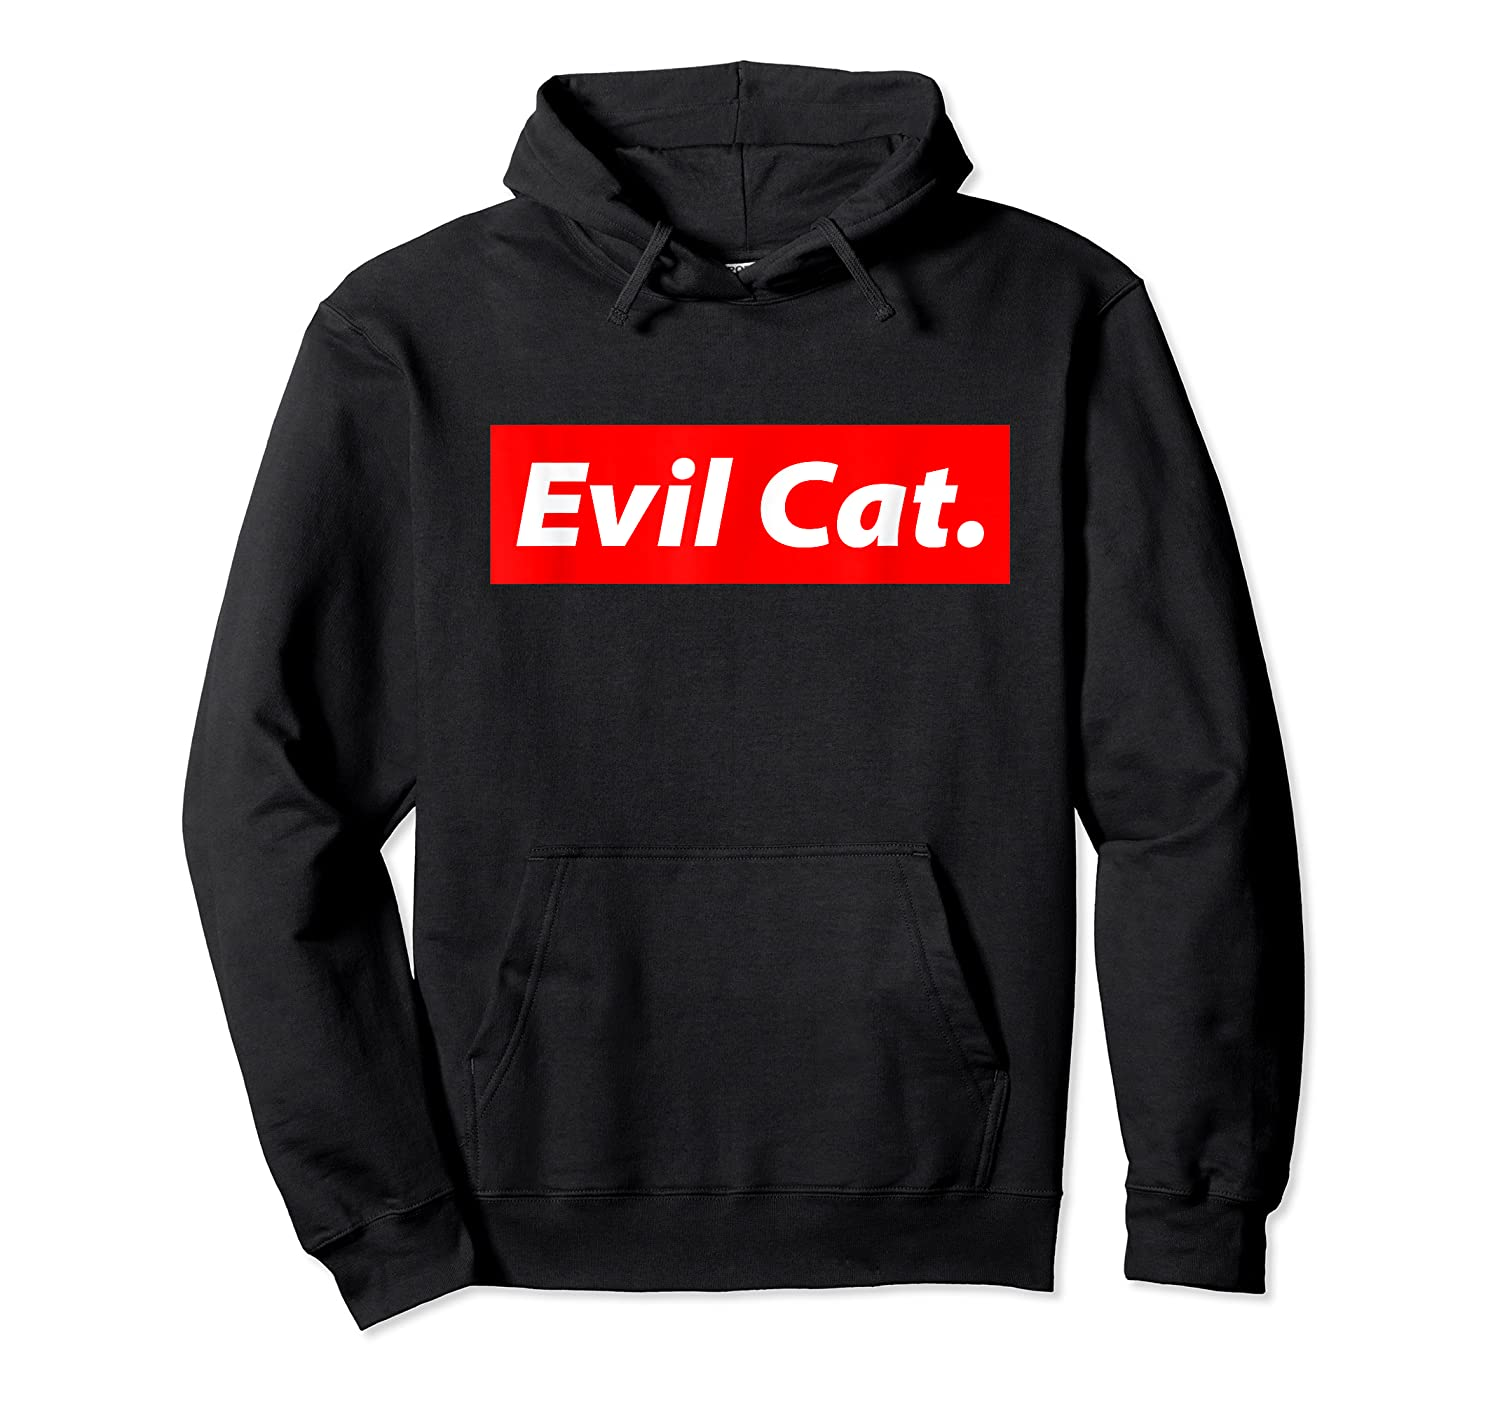 Evil Cat Streetwear For And Evil Cat Shirts Unisex Pullover Hoodie